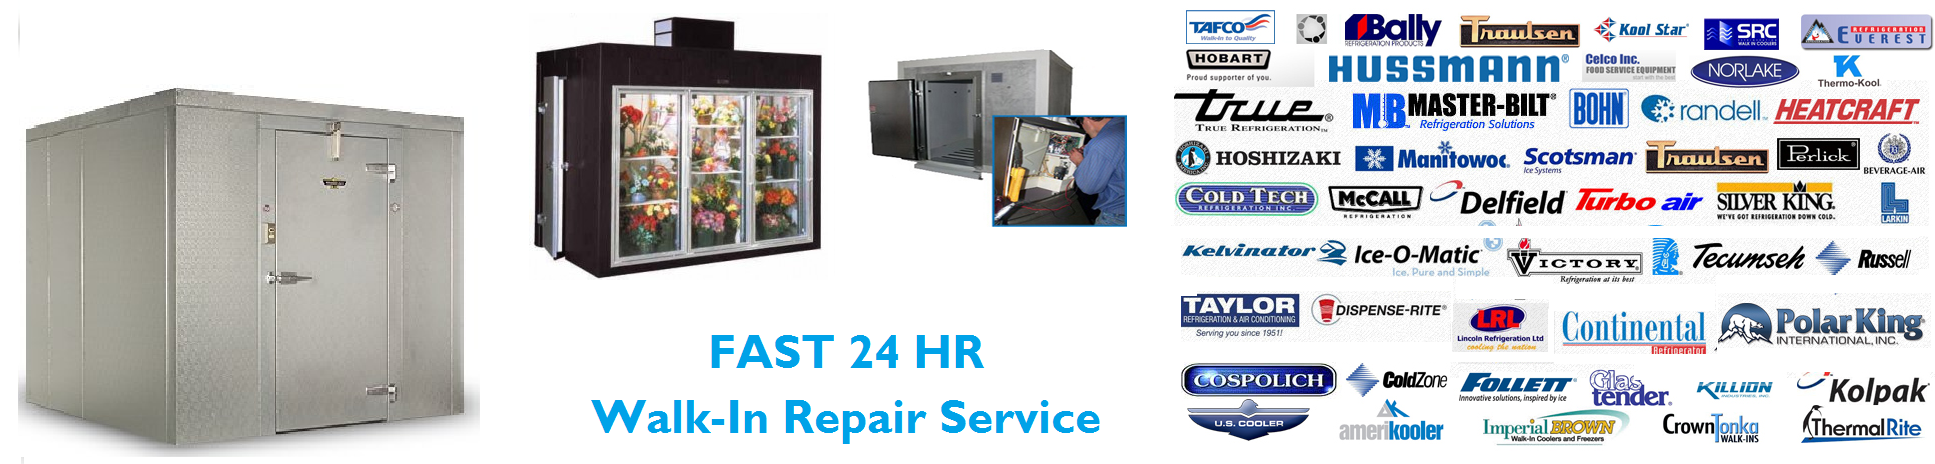 Walk-In Refrigerator Repair